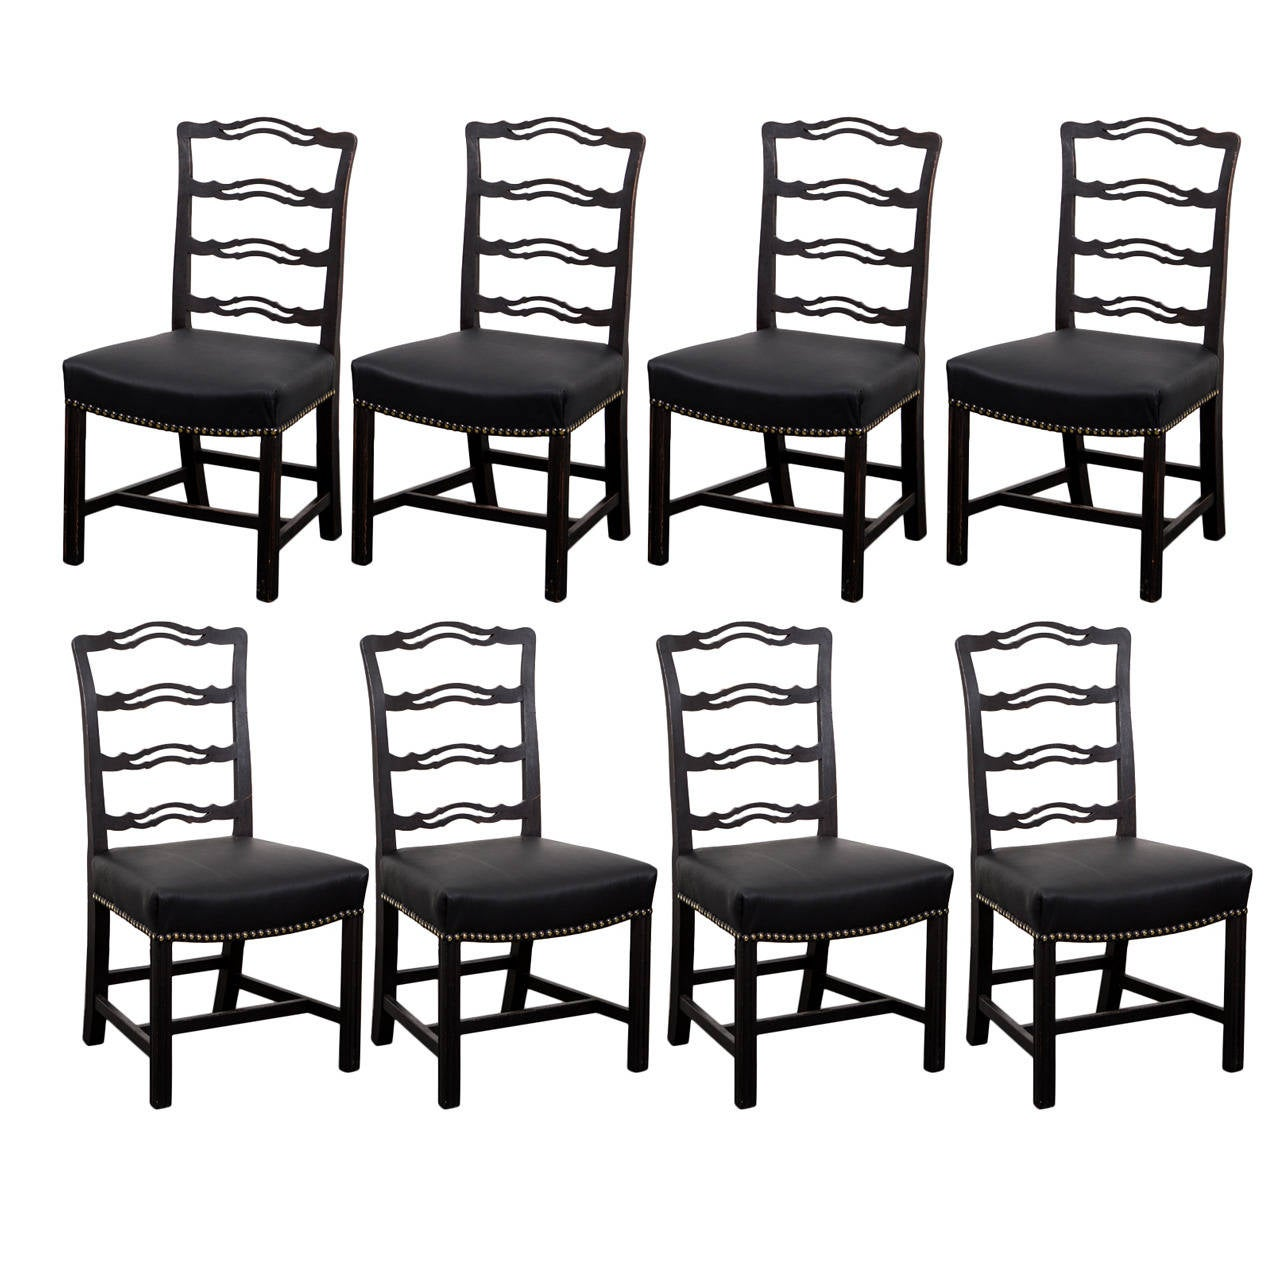 Black Chairs For Sale Set Of Eight English Black Dining Chairs For Sale At 1stdibs